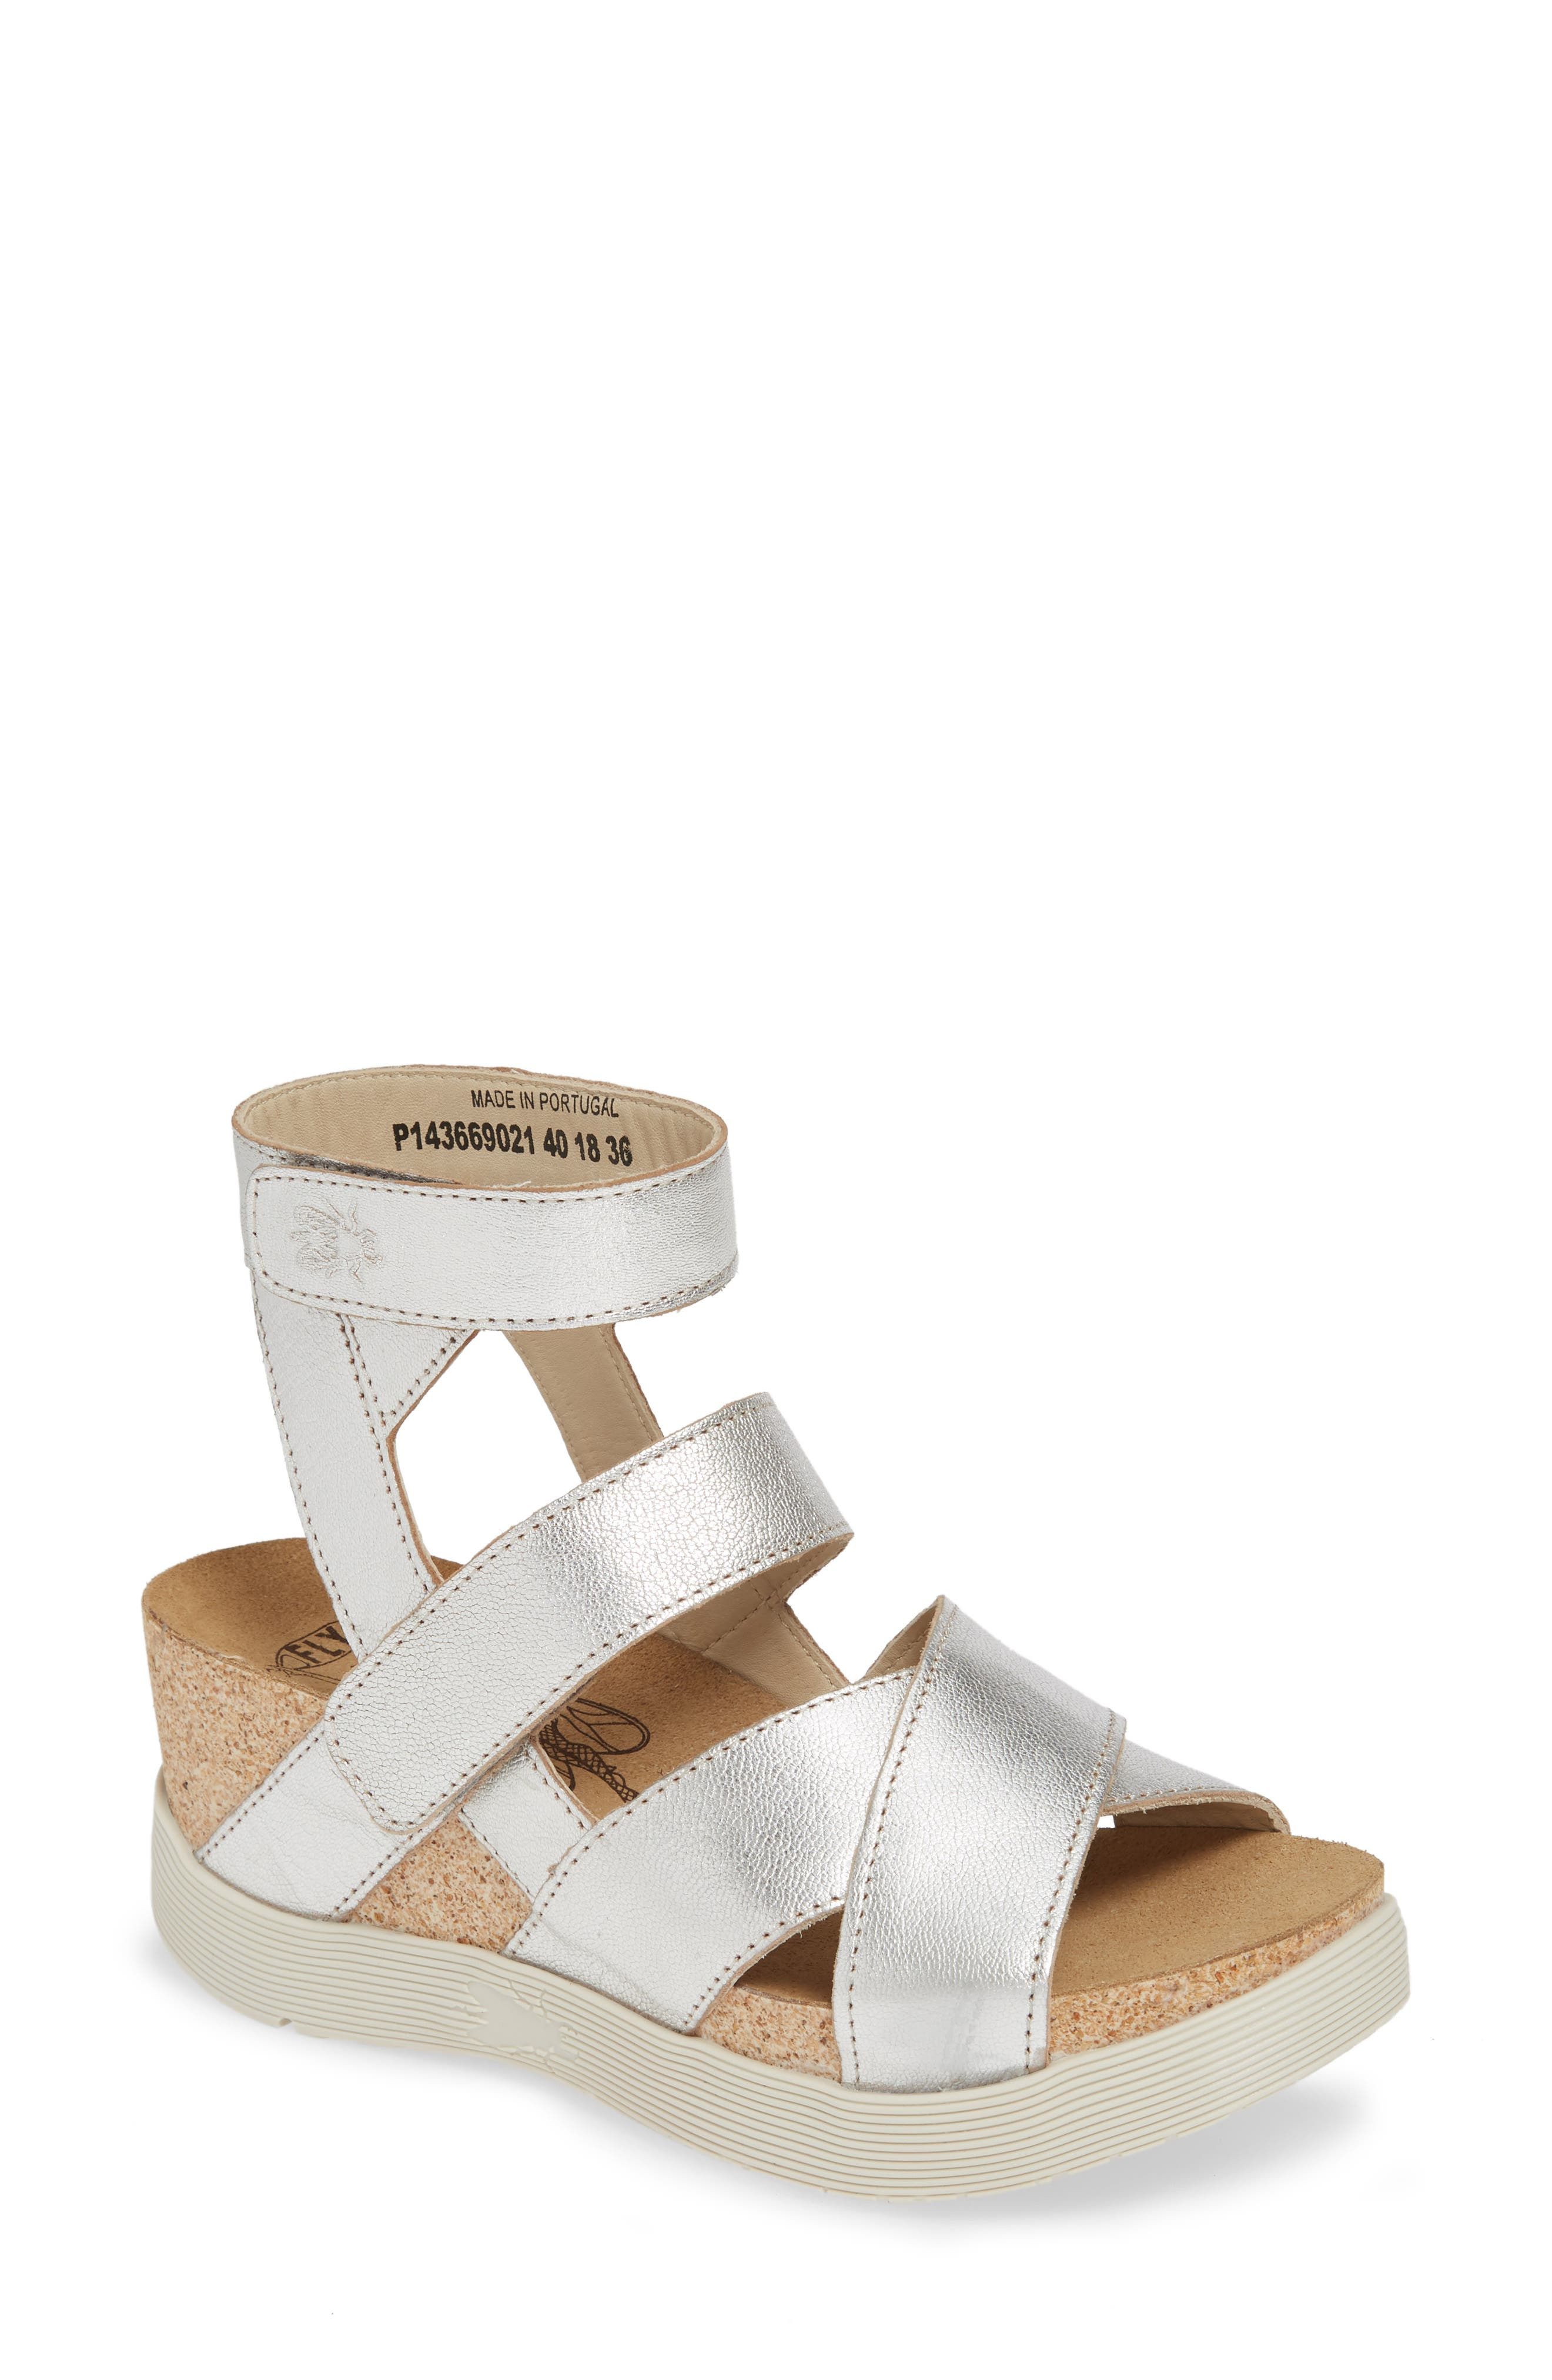 FLY LONDON 'Wege' Leather Sandal, Main, color, SILVER LEATHER